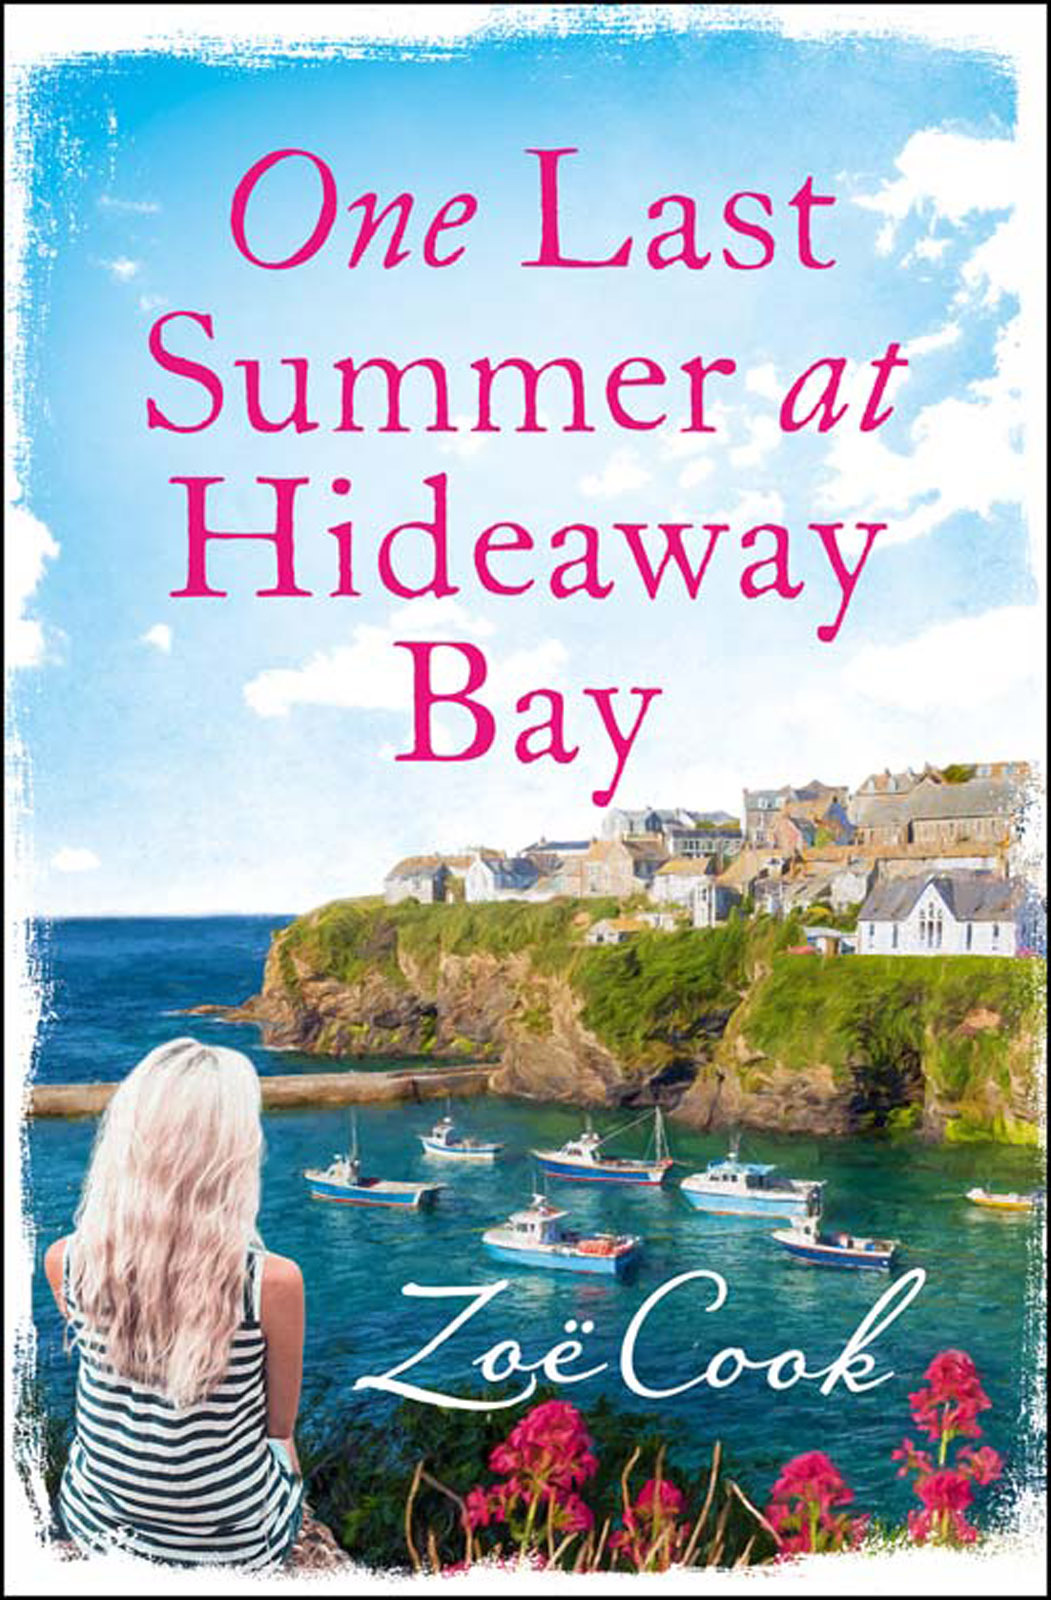 Zoe Cook One Last Summer at Hideaway Bay: A gripping romantic read with an ending you won't see coming! at last